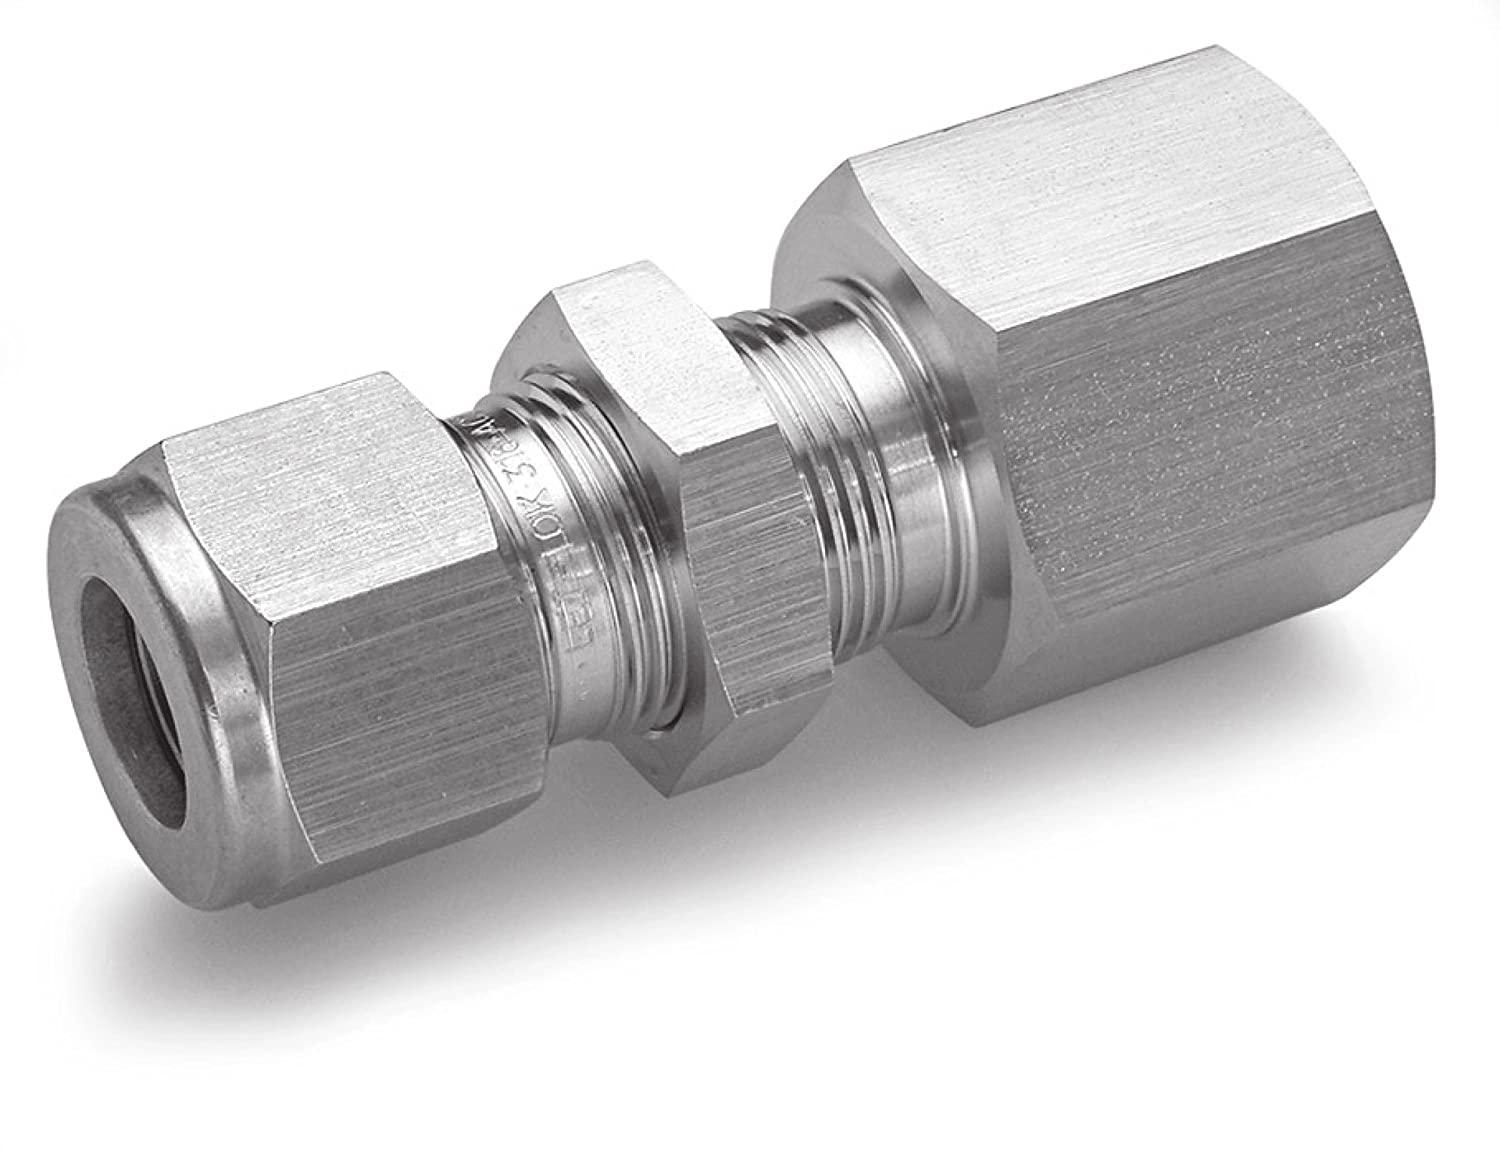 90 Degree Elbow Ham-Let Stainless Steel 316 Let-Lok Compression Fitting 1//4 Tube OD